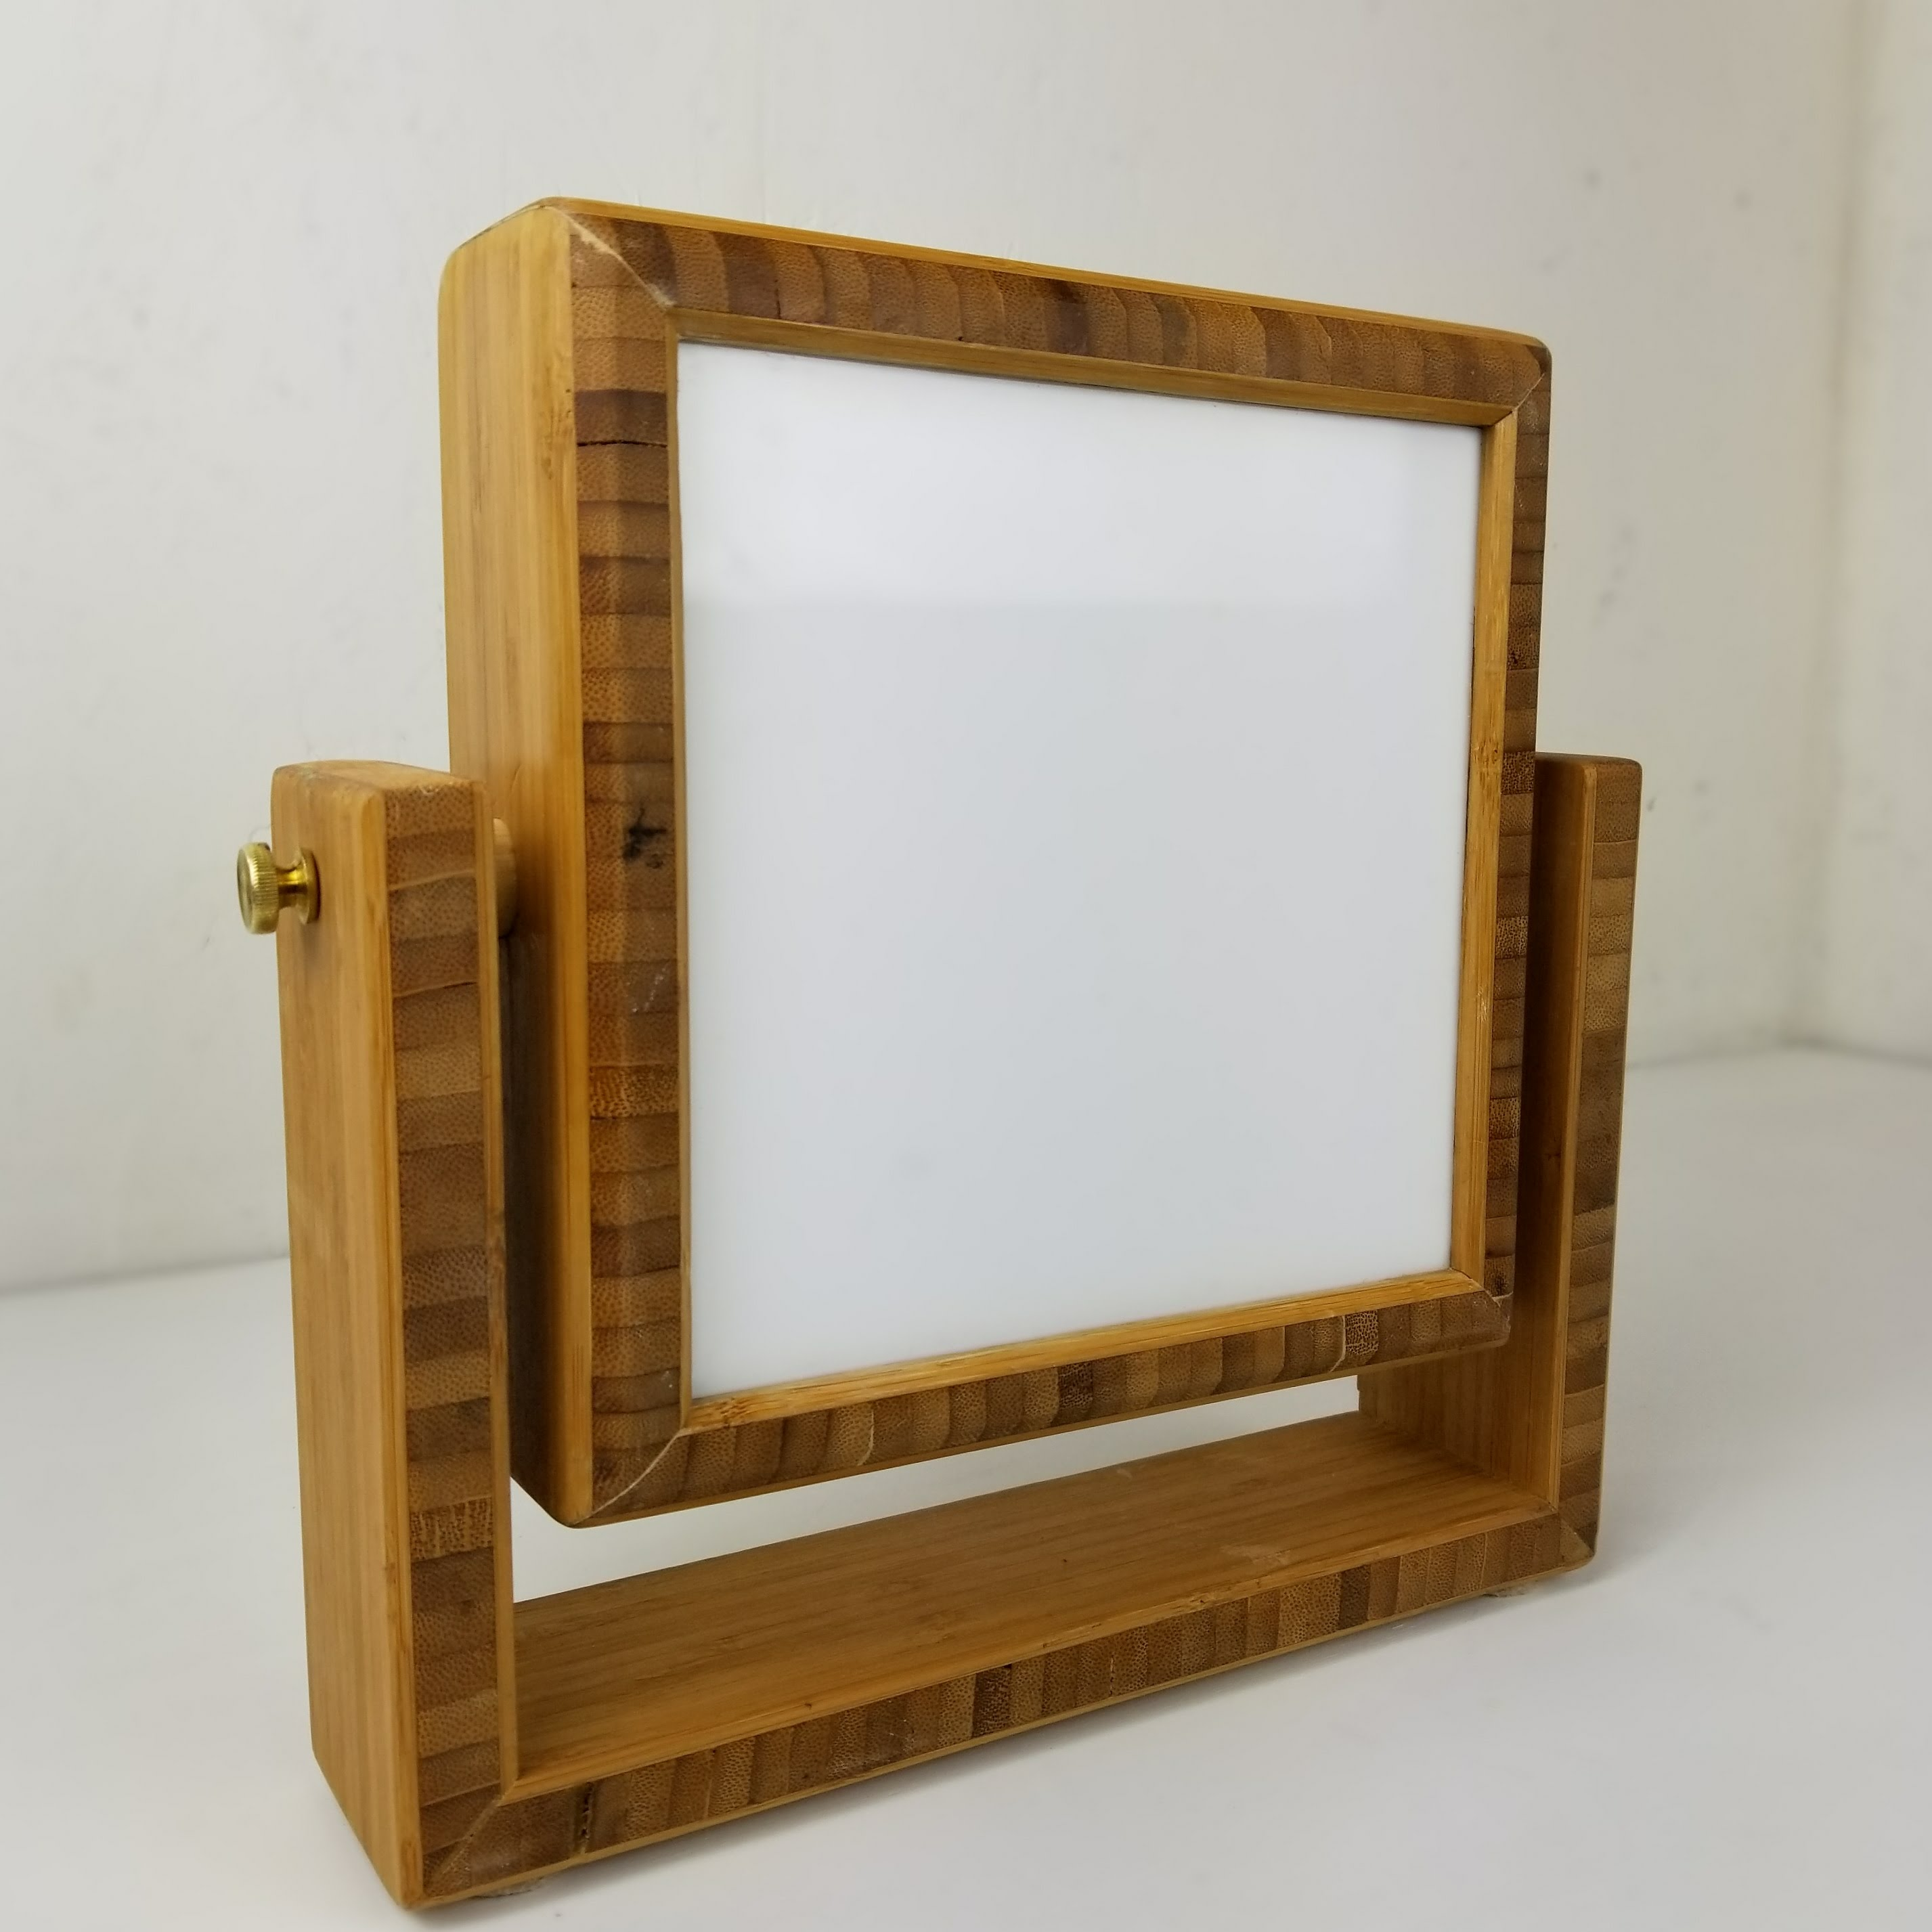 Picture of Attach the Back Panel and Start It Up!